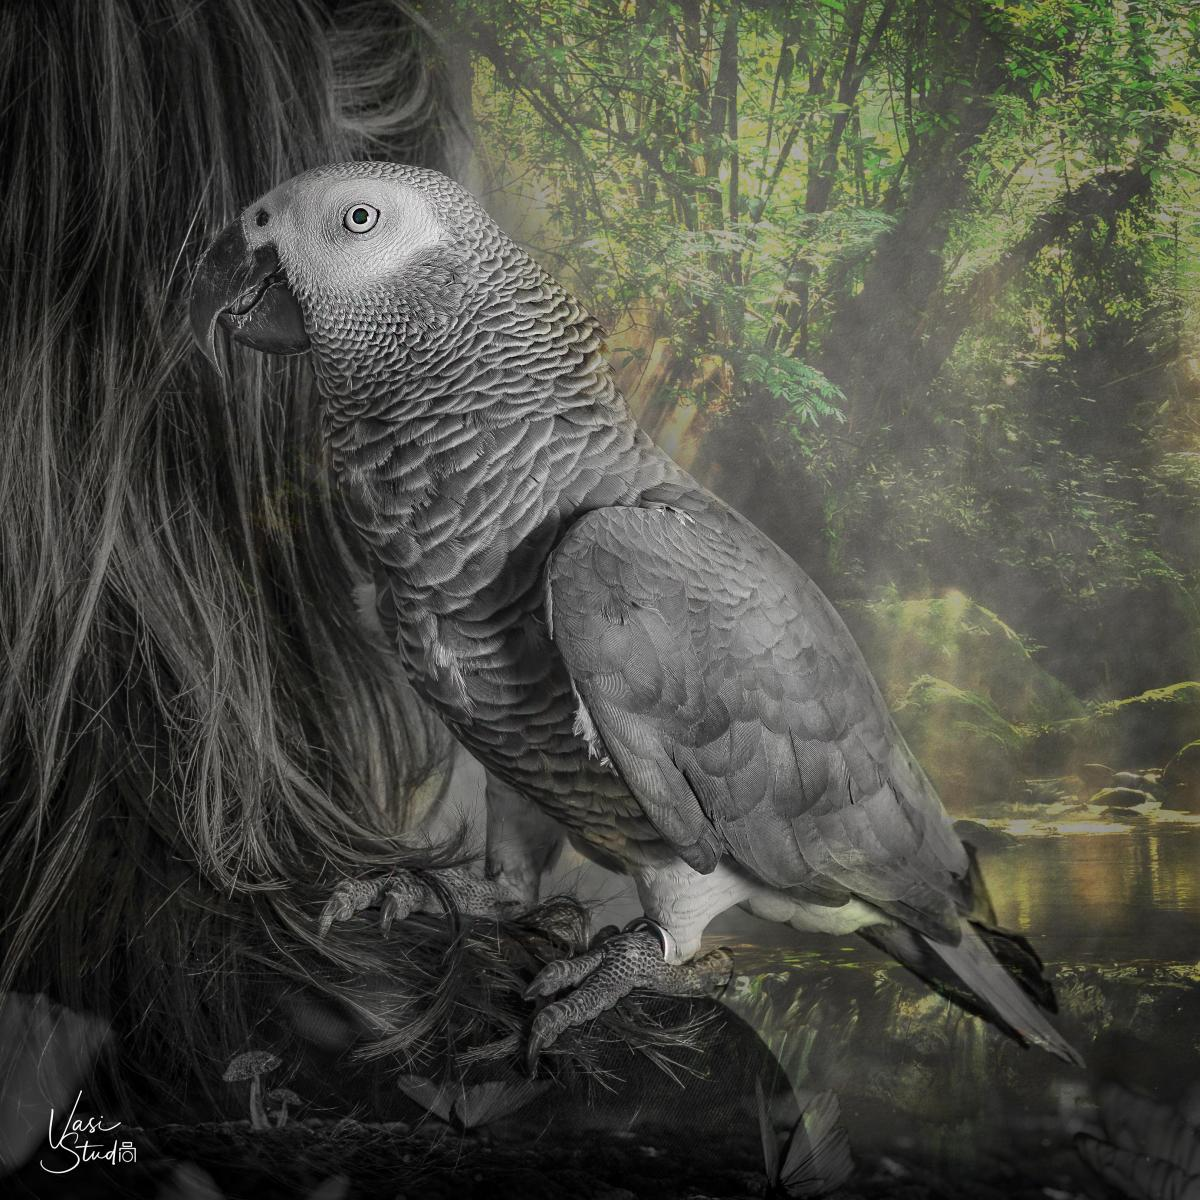 Parrot Bird Creative Art Piece. You can send us your photo and create a wall art piece for your home.